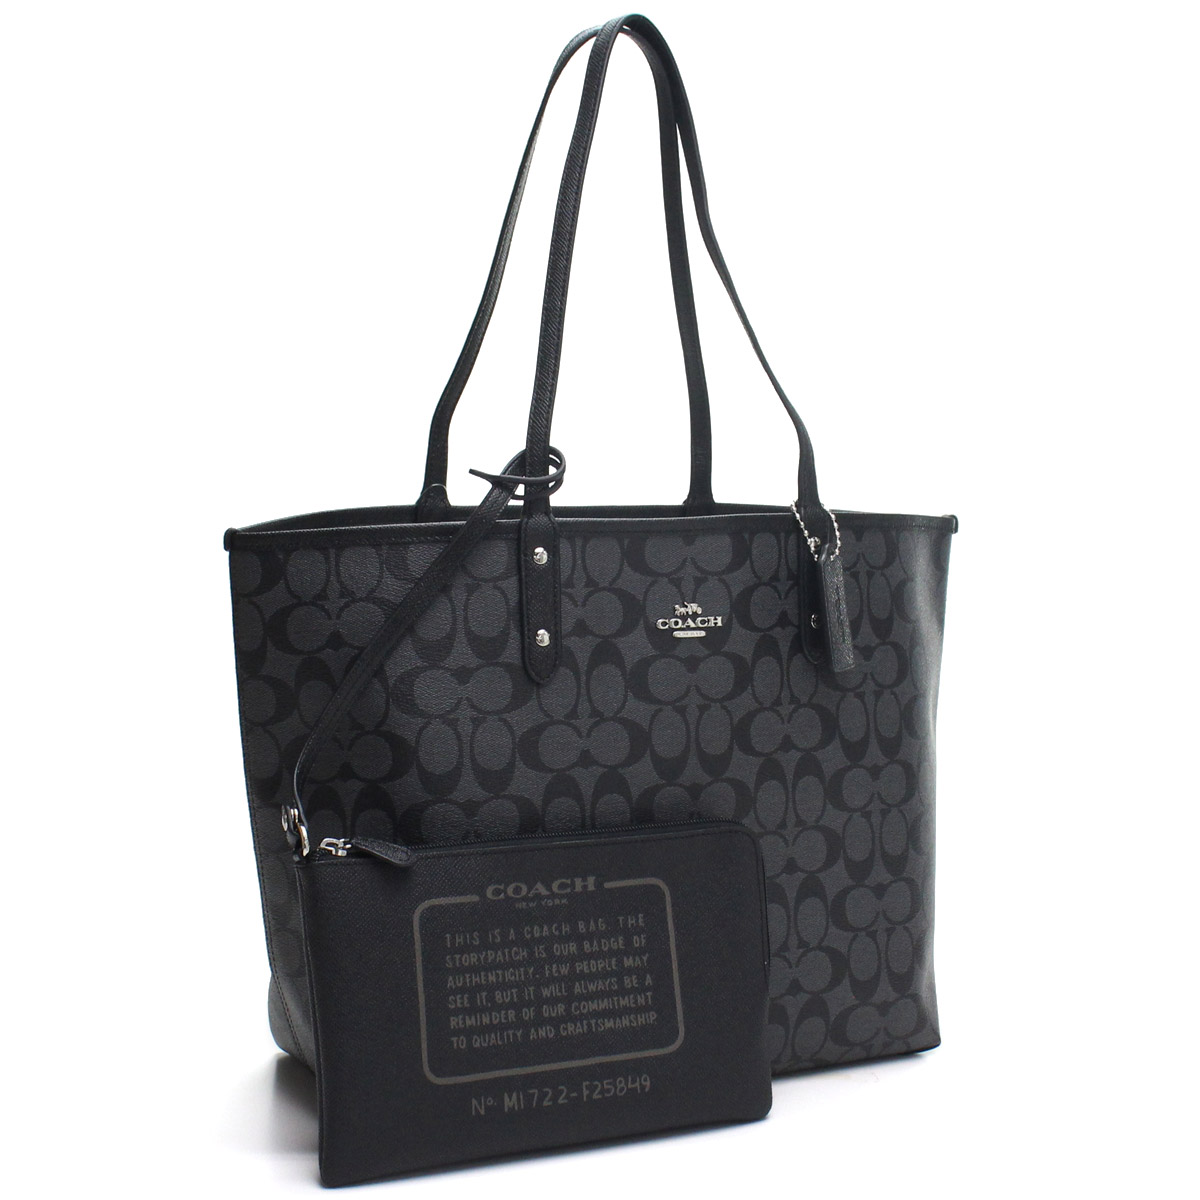 1afe125d10 Bighit The total brand wholesale  F25849 SVN45 gray system black with the coach  COACH signature reversible tote bag porch